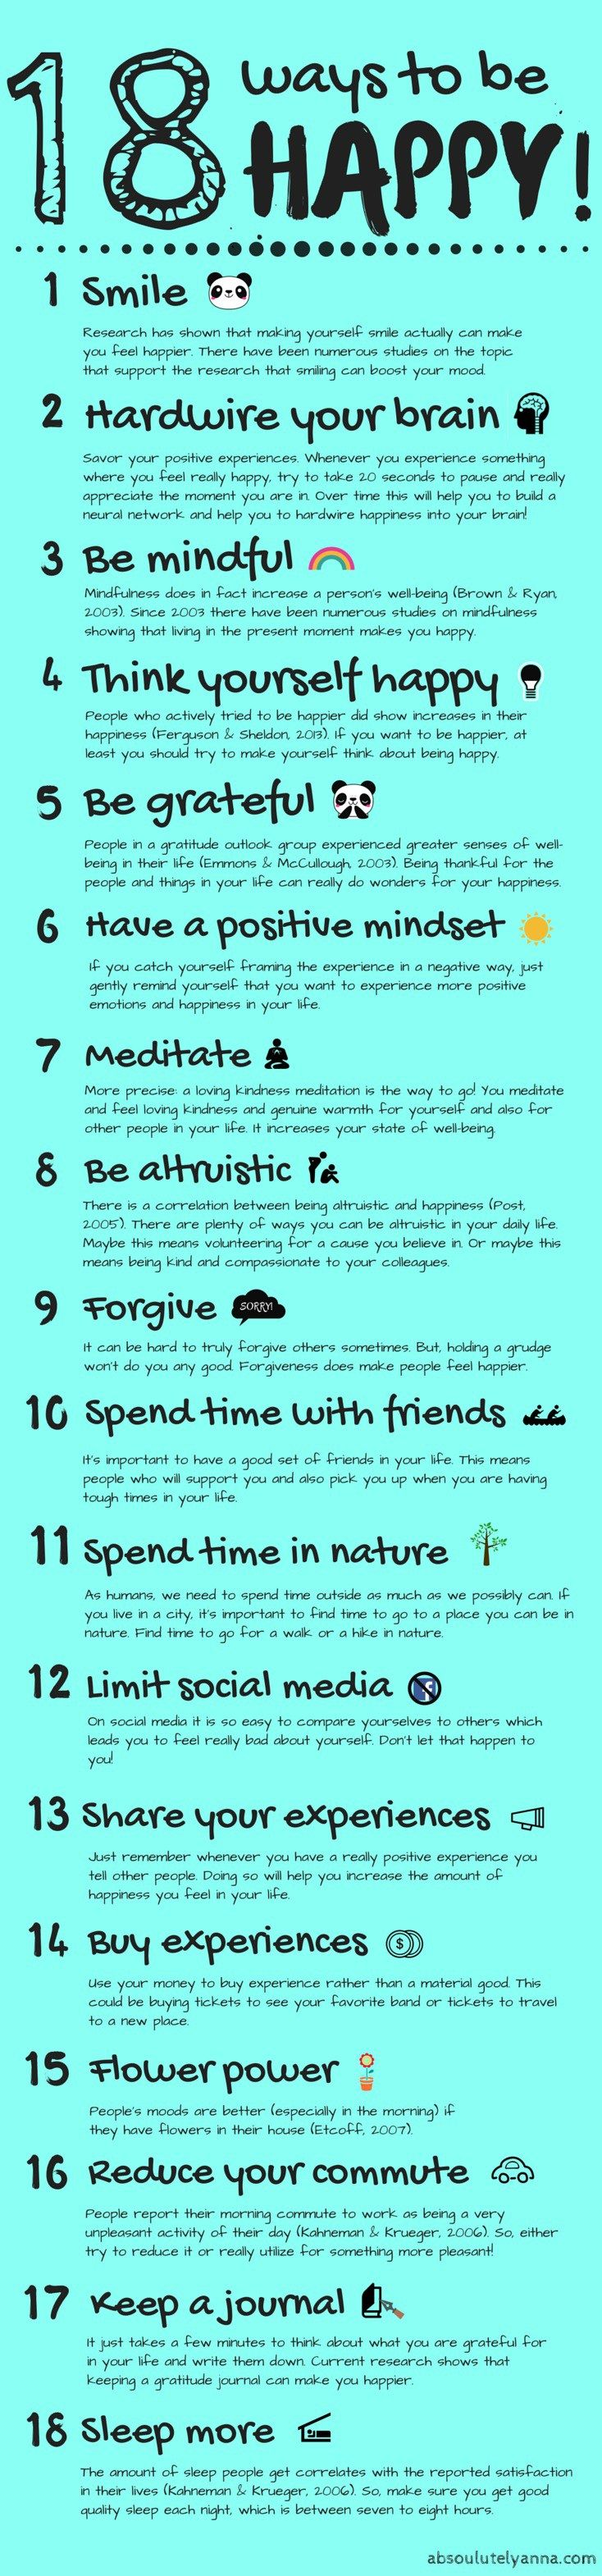 This is a very convenient infographic compiling 18 scientifically proven ways to be happy